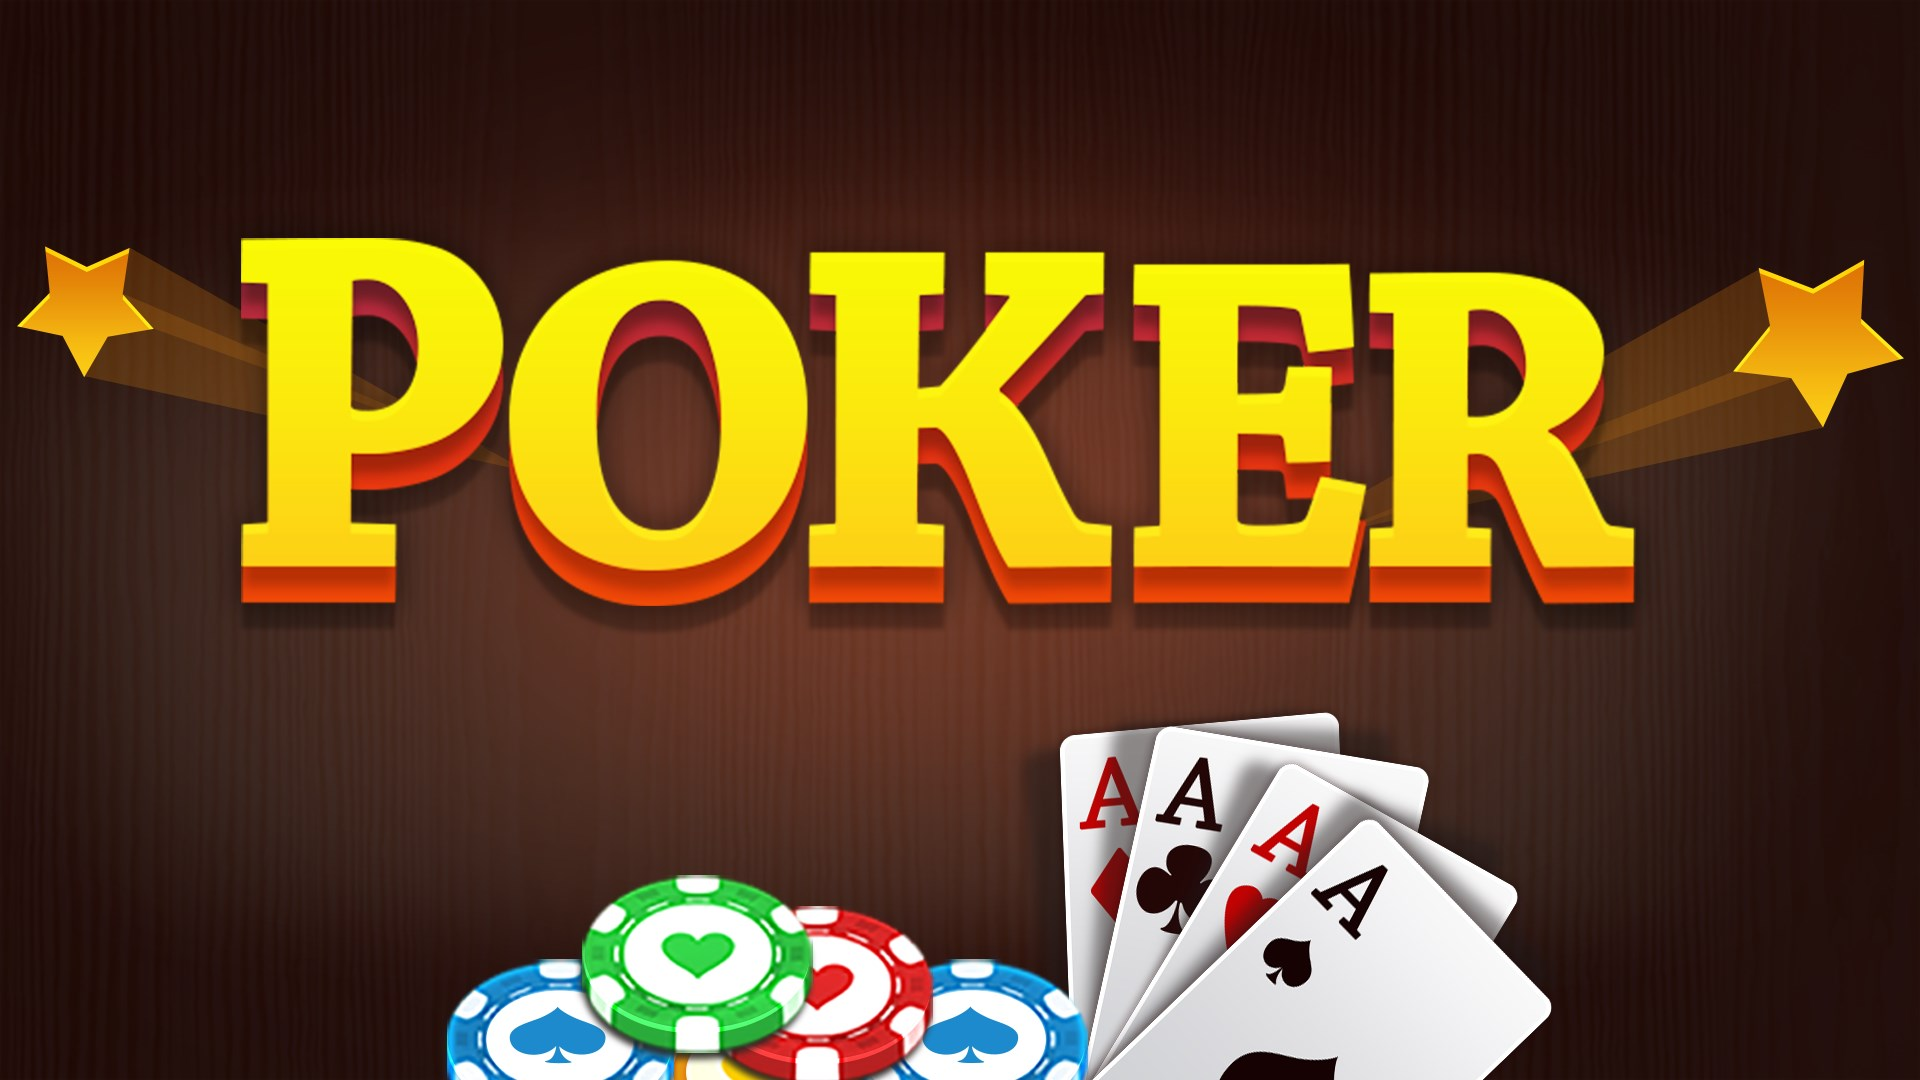 A number of areas boasting of online gambling properties in comparison to landscape post thumbnail image